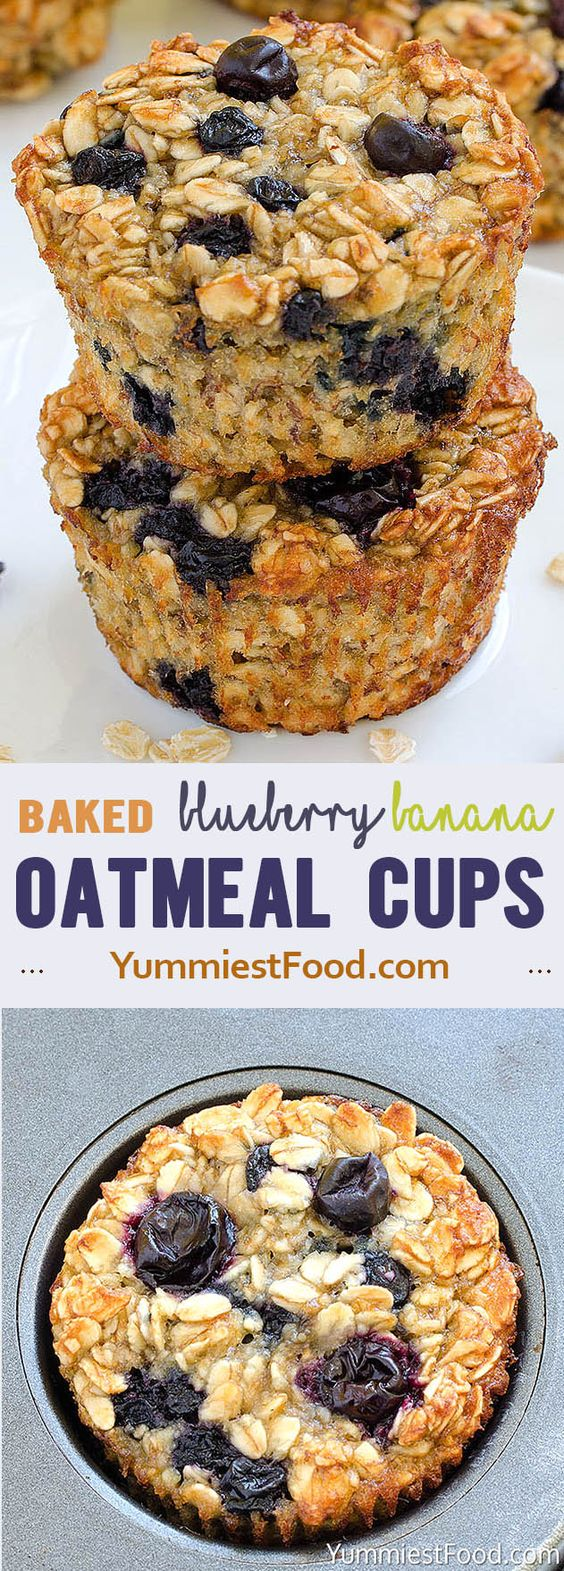 Best Baked Blueberry Banana Oatmeal Cups